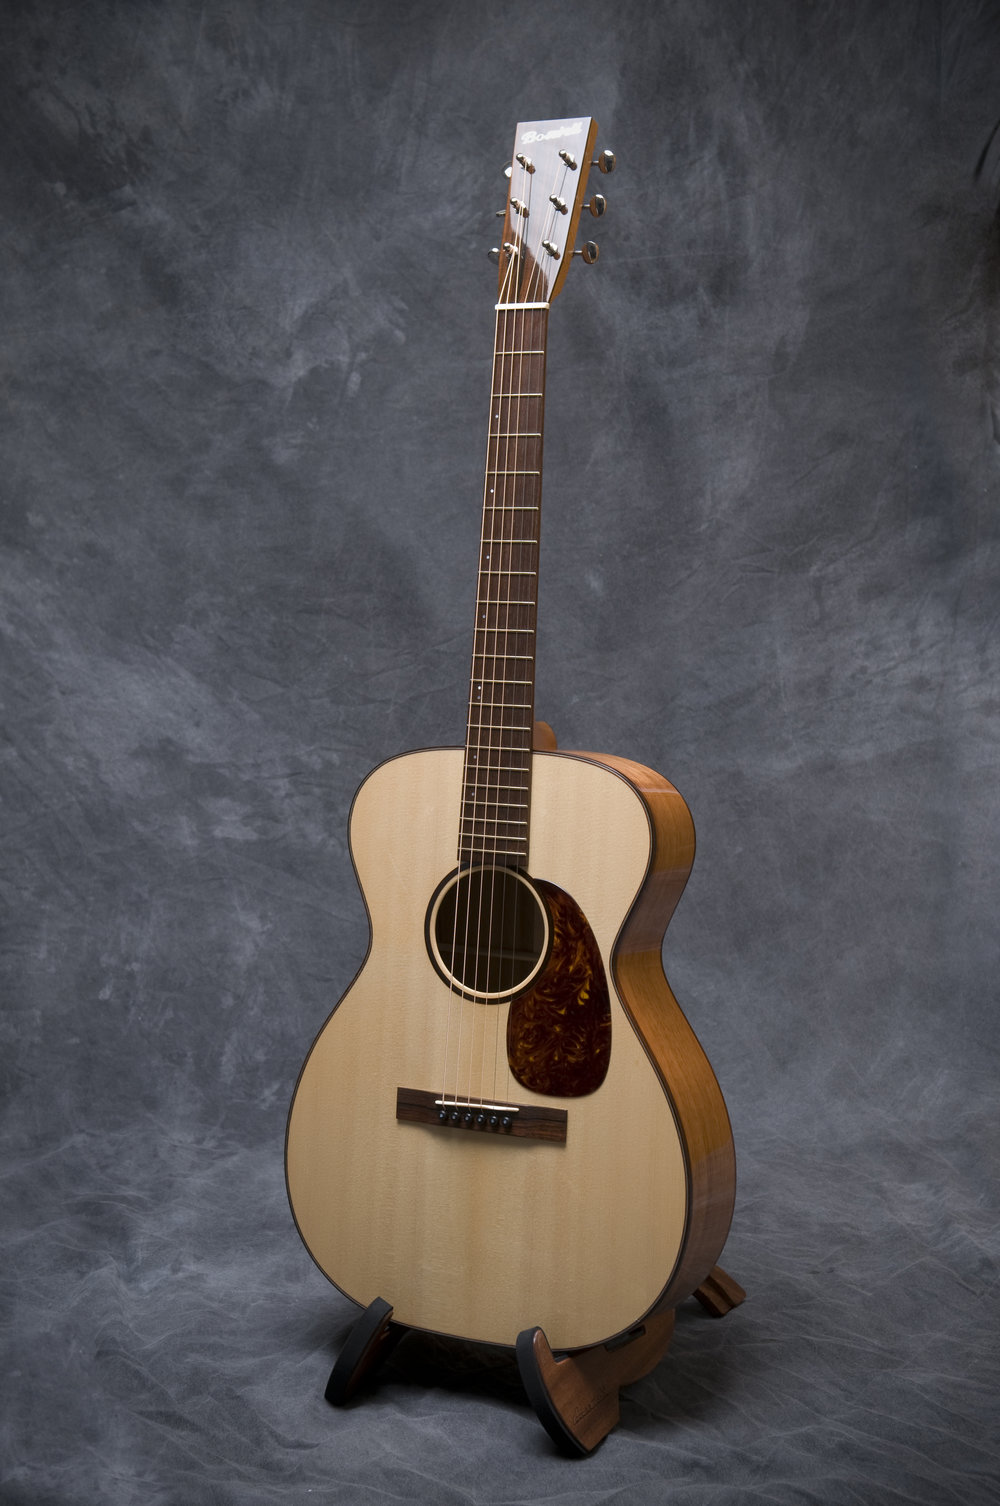 The Boswell 00-14 reviewed in the March issue of Acoustic Guitar Magazine.  Click the link below to read the review, and watch the video.